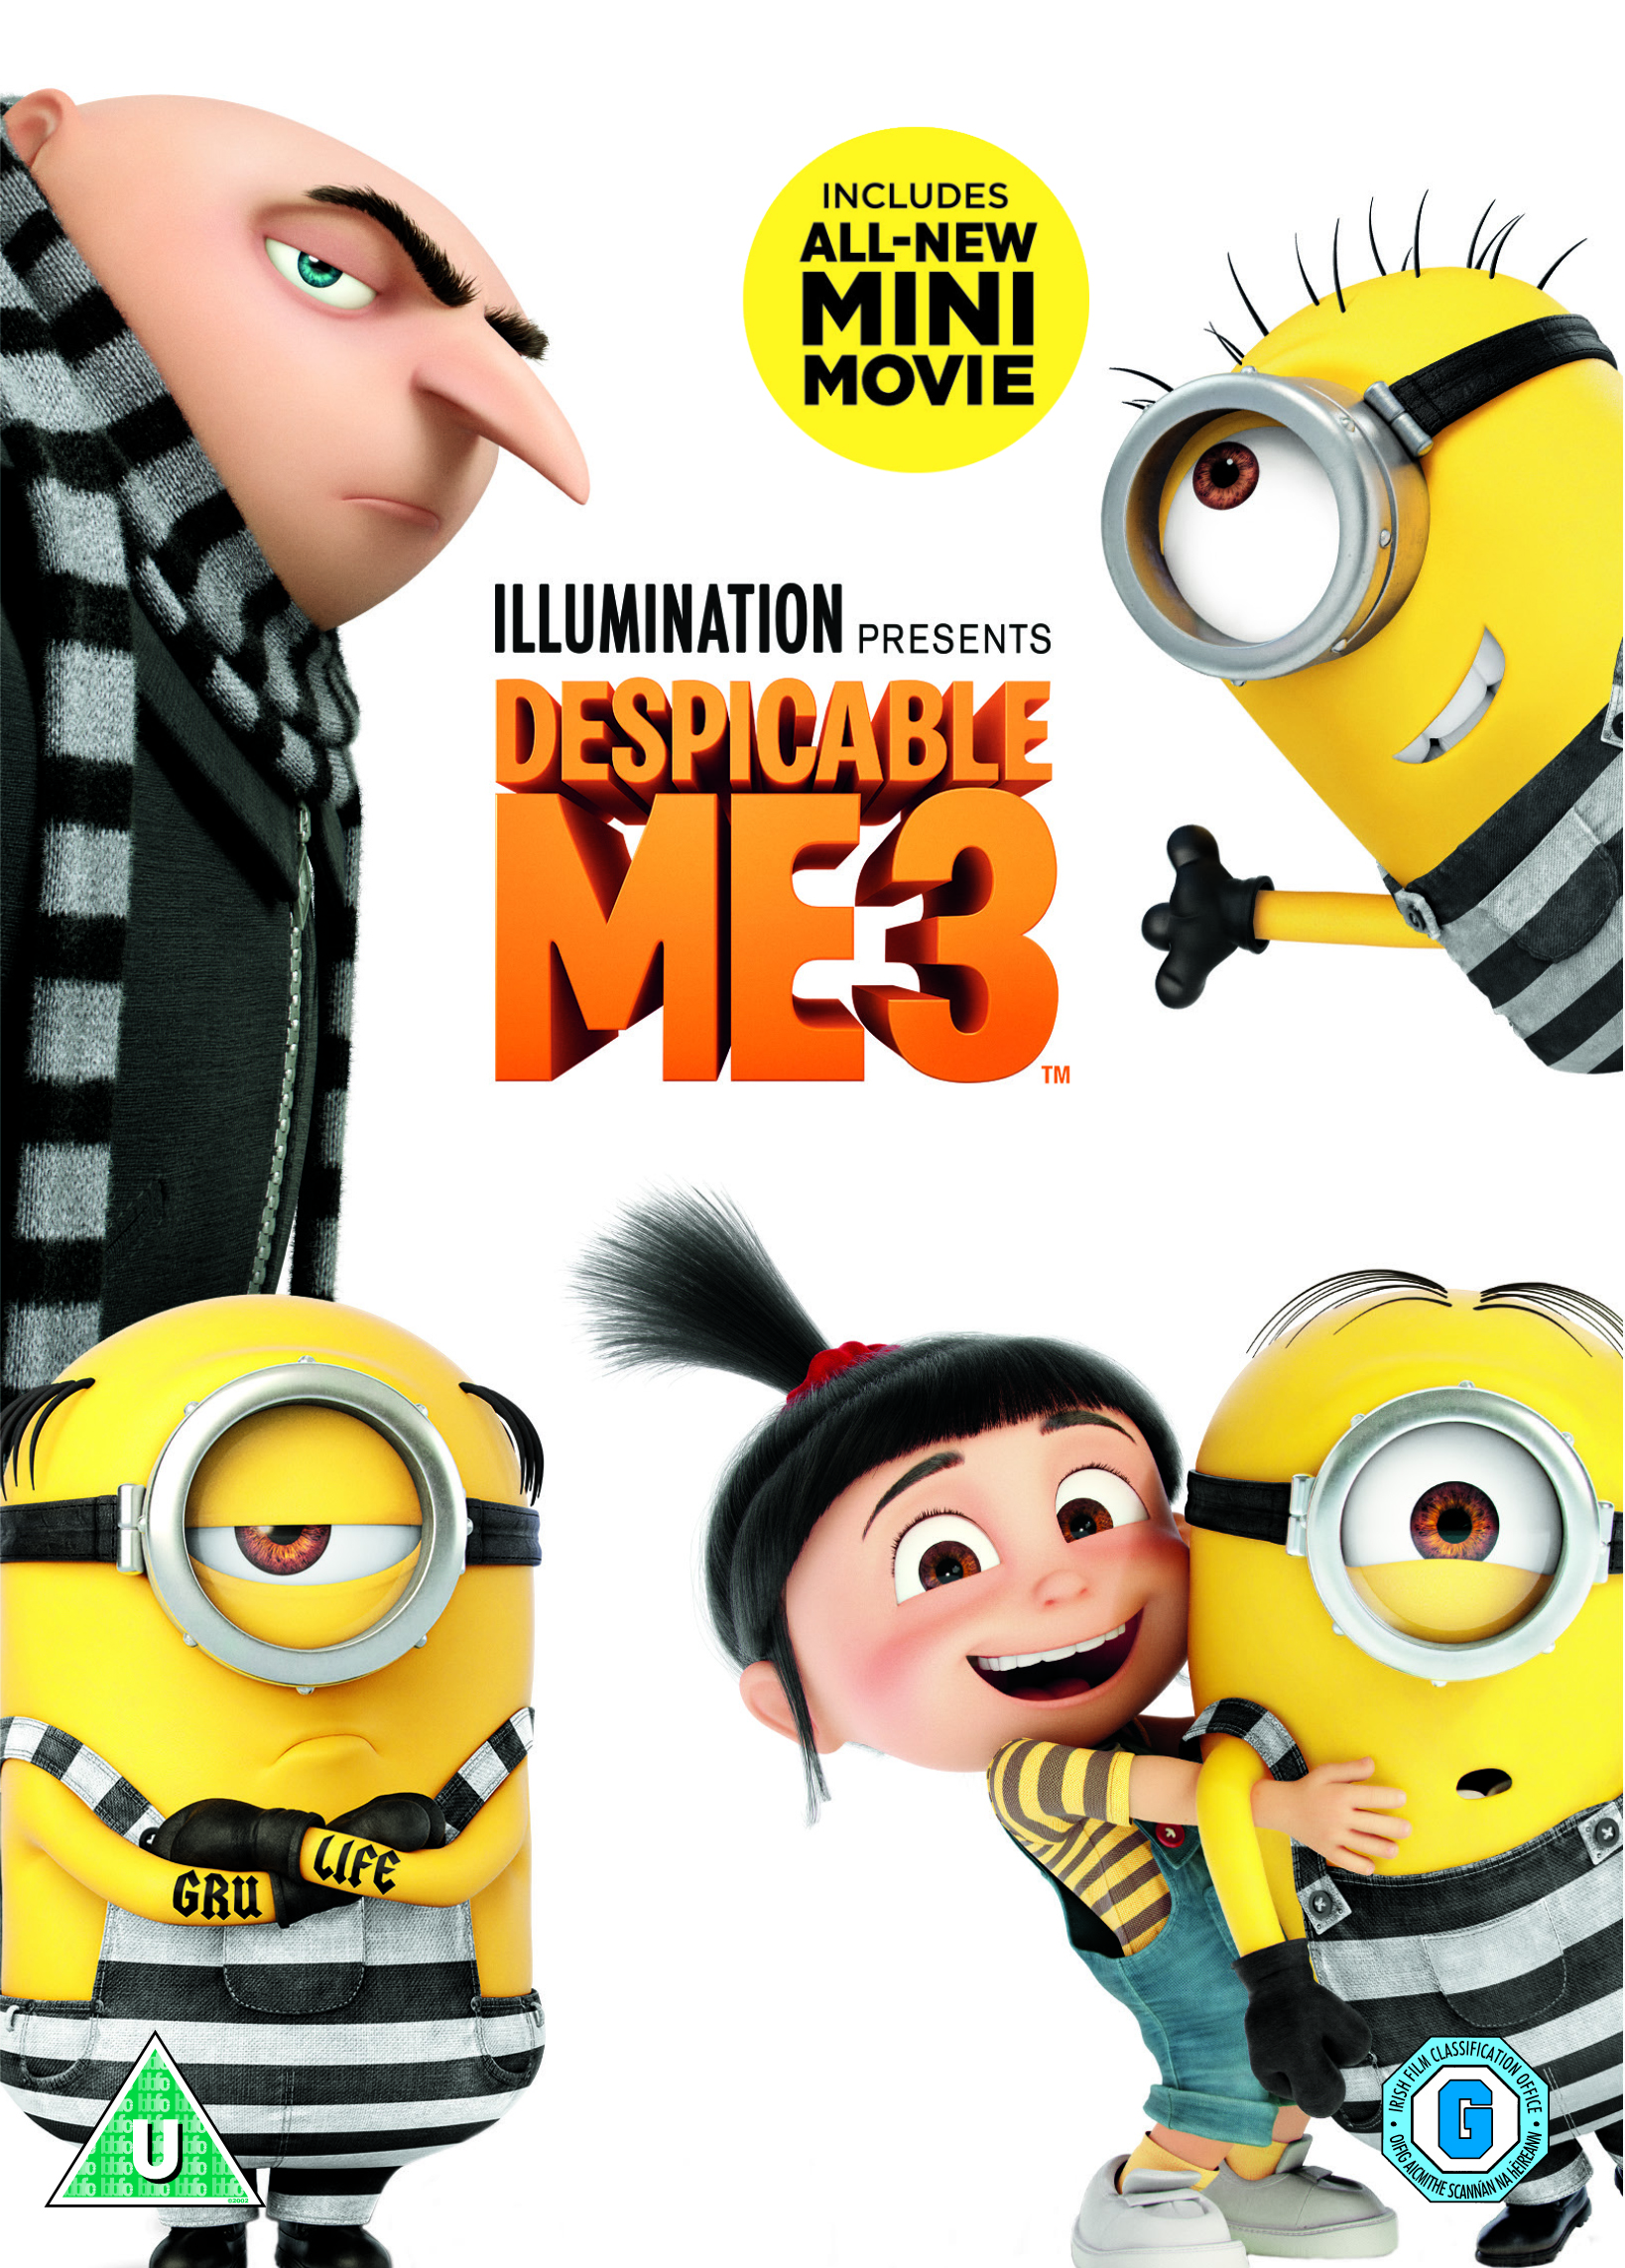 WIN DESPICABLE ME 3 ON DVD!